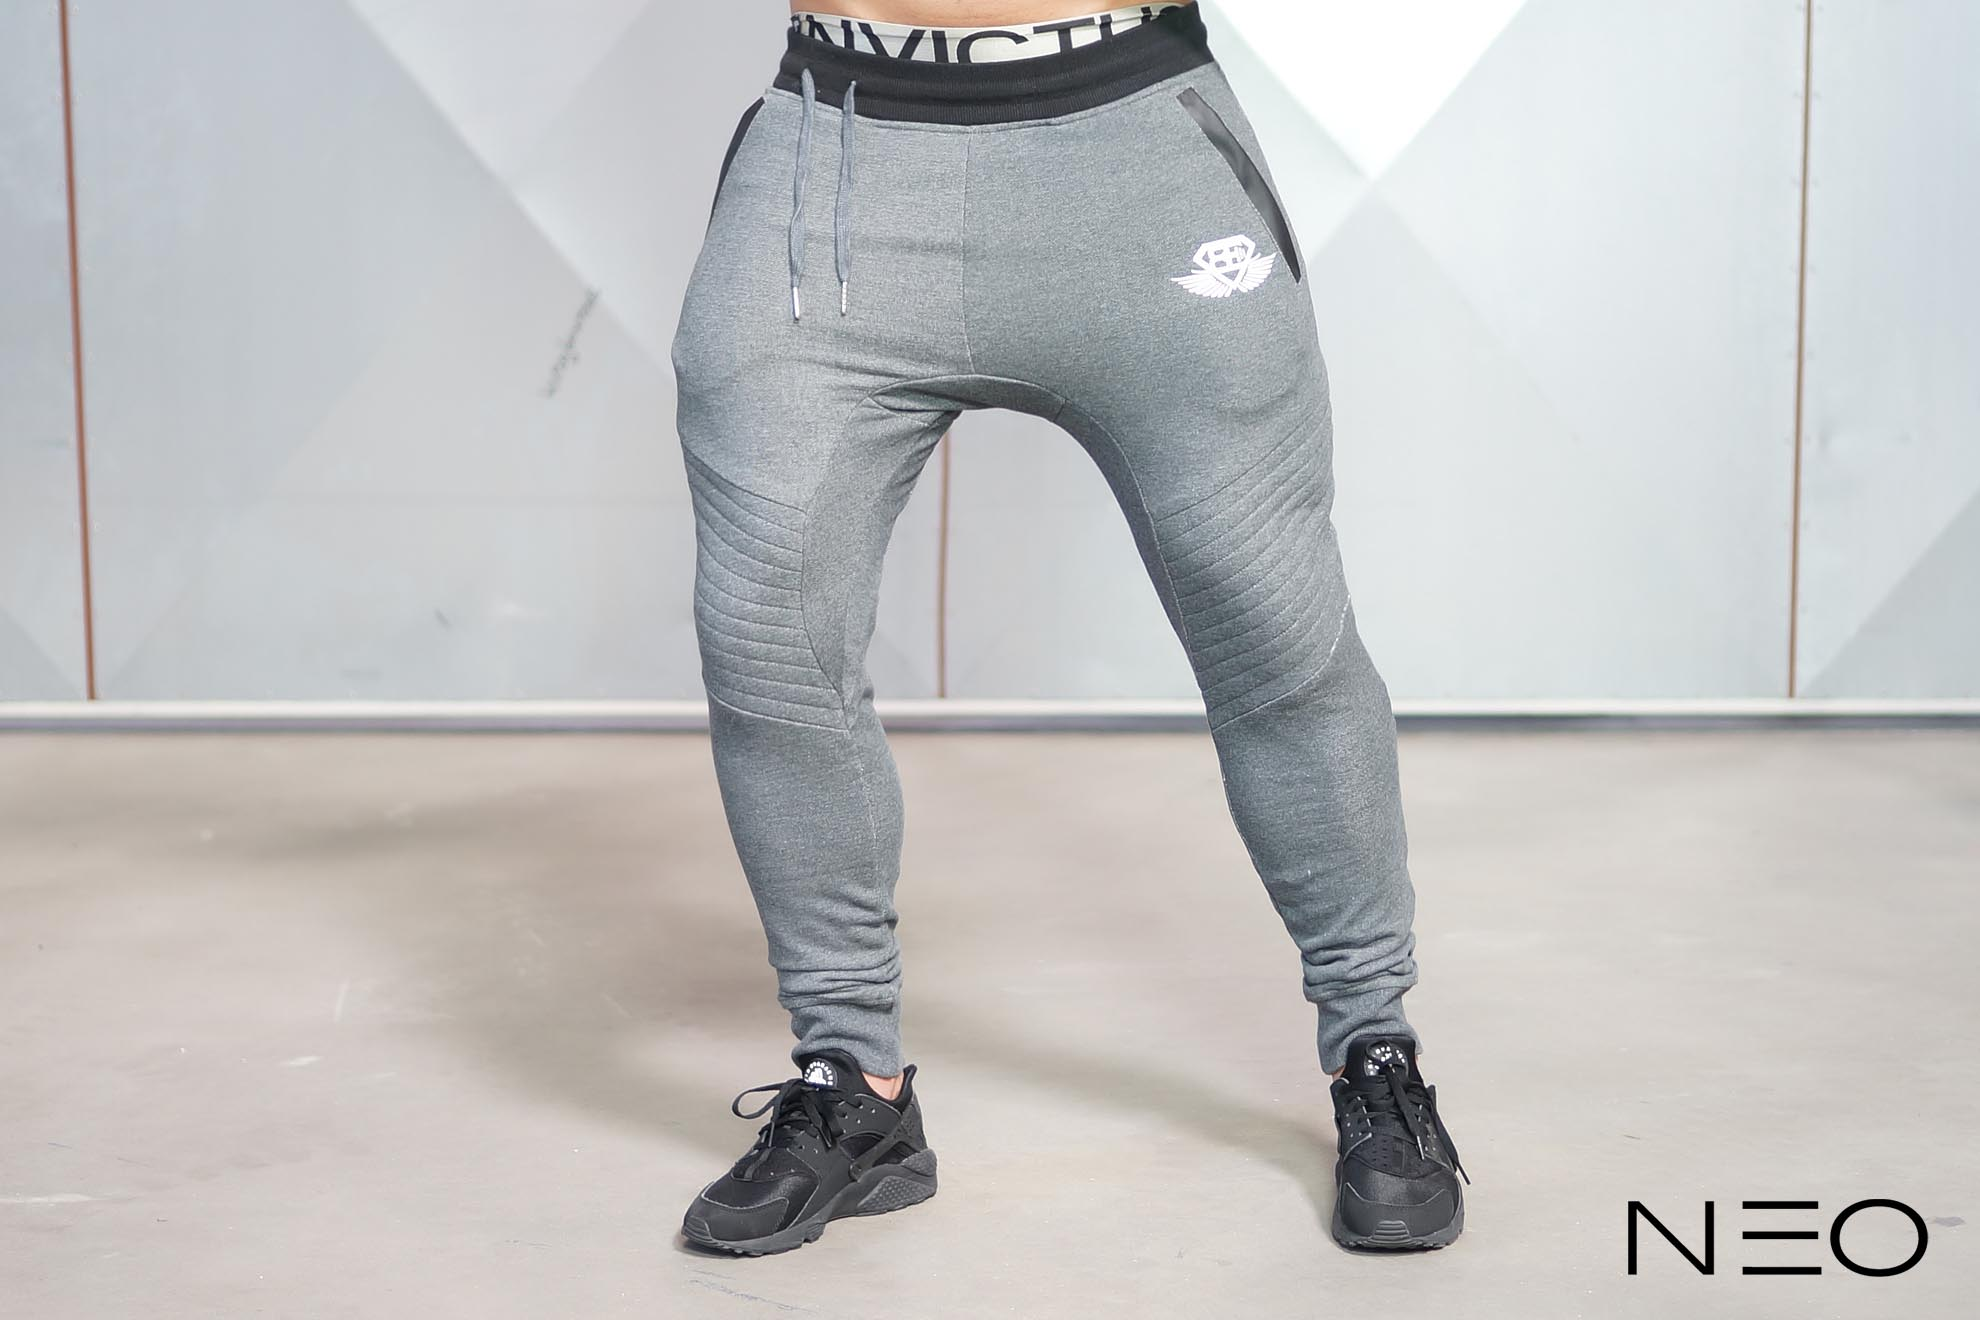 NEO – Joggers ANTHRACITE – Body Engineers International SHOP